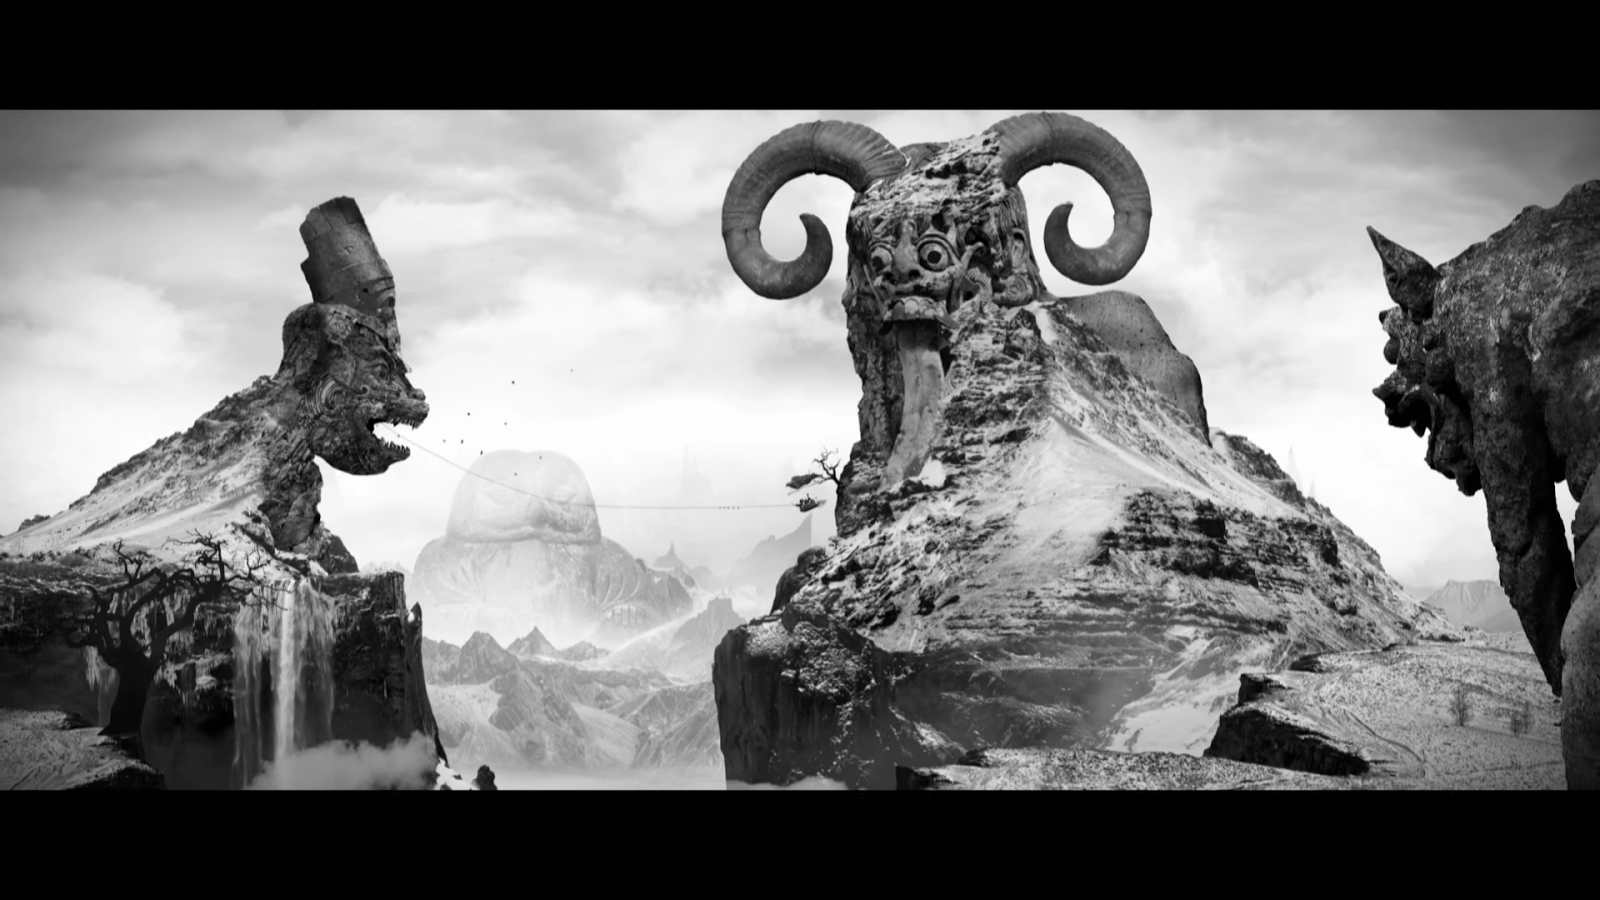 The Artistic And Animated Nature Of The Video Could Monsters And